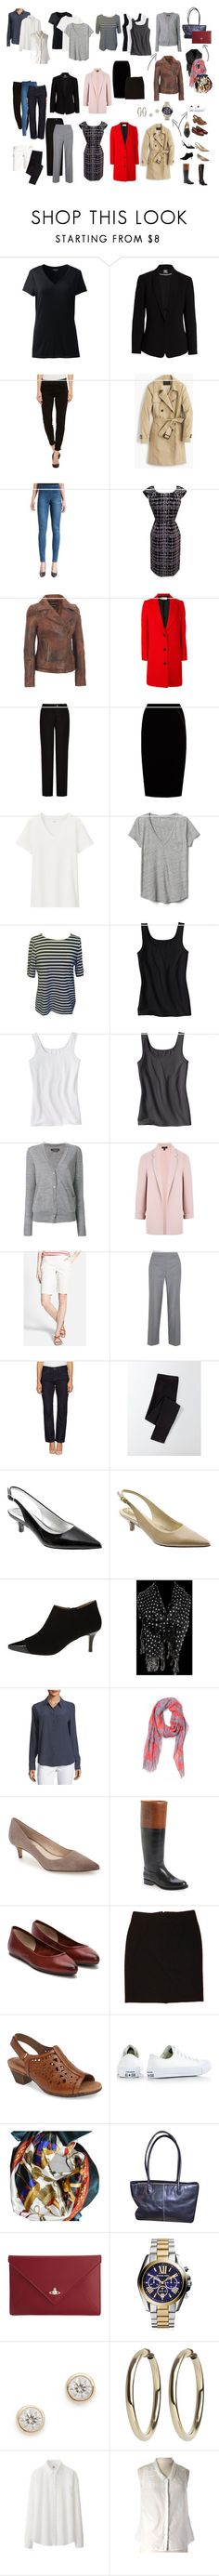 """My Five Piece French Wardrobe"" by lorisdoris on Polyvore featuring Lands' End, Vince Camuto, Liverpool Jeans Co., J.Crew, Lanvin, Acne Studios, Jupe By Jackie, Uniqlo, Gap and Isabel Marant"